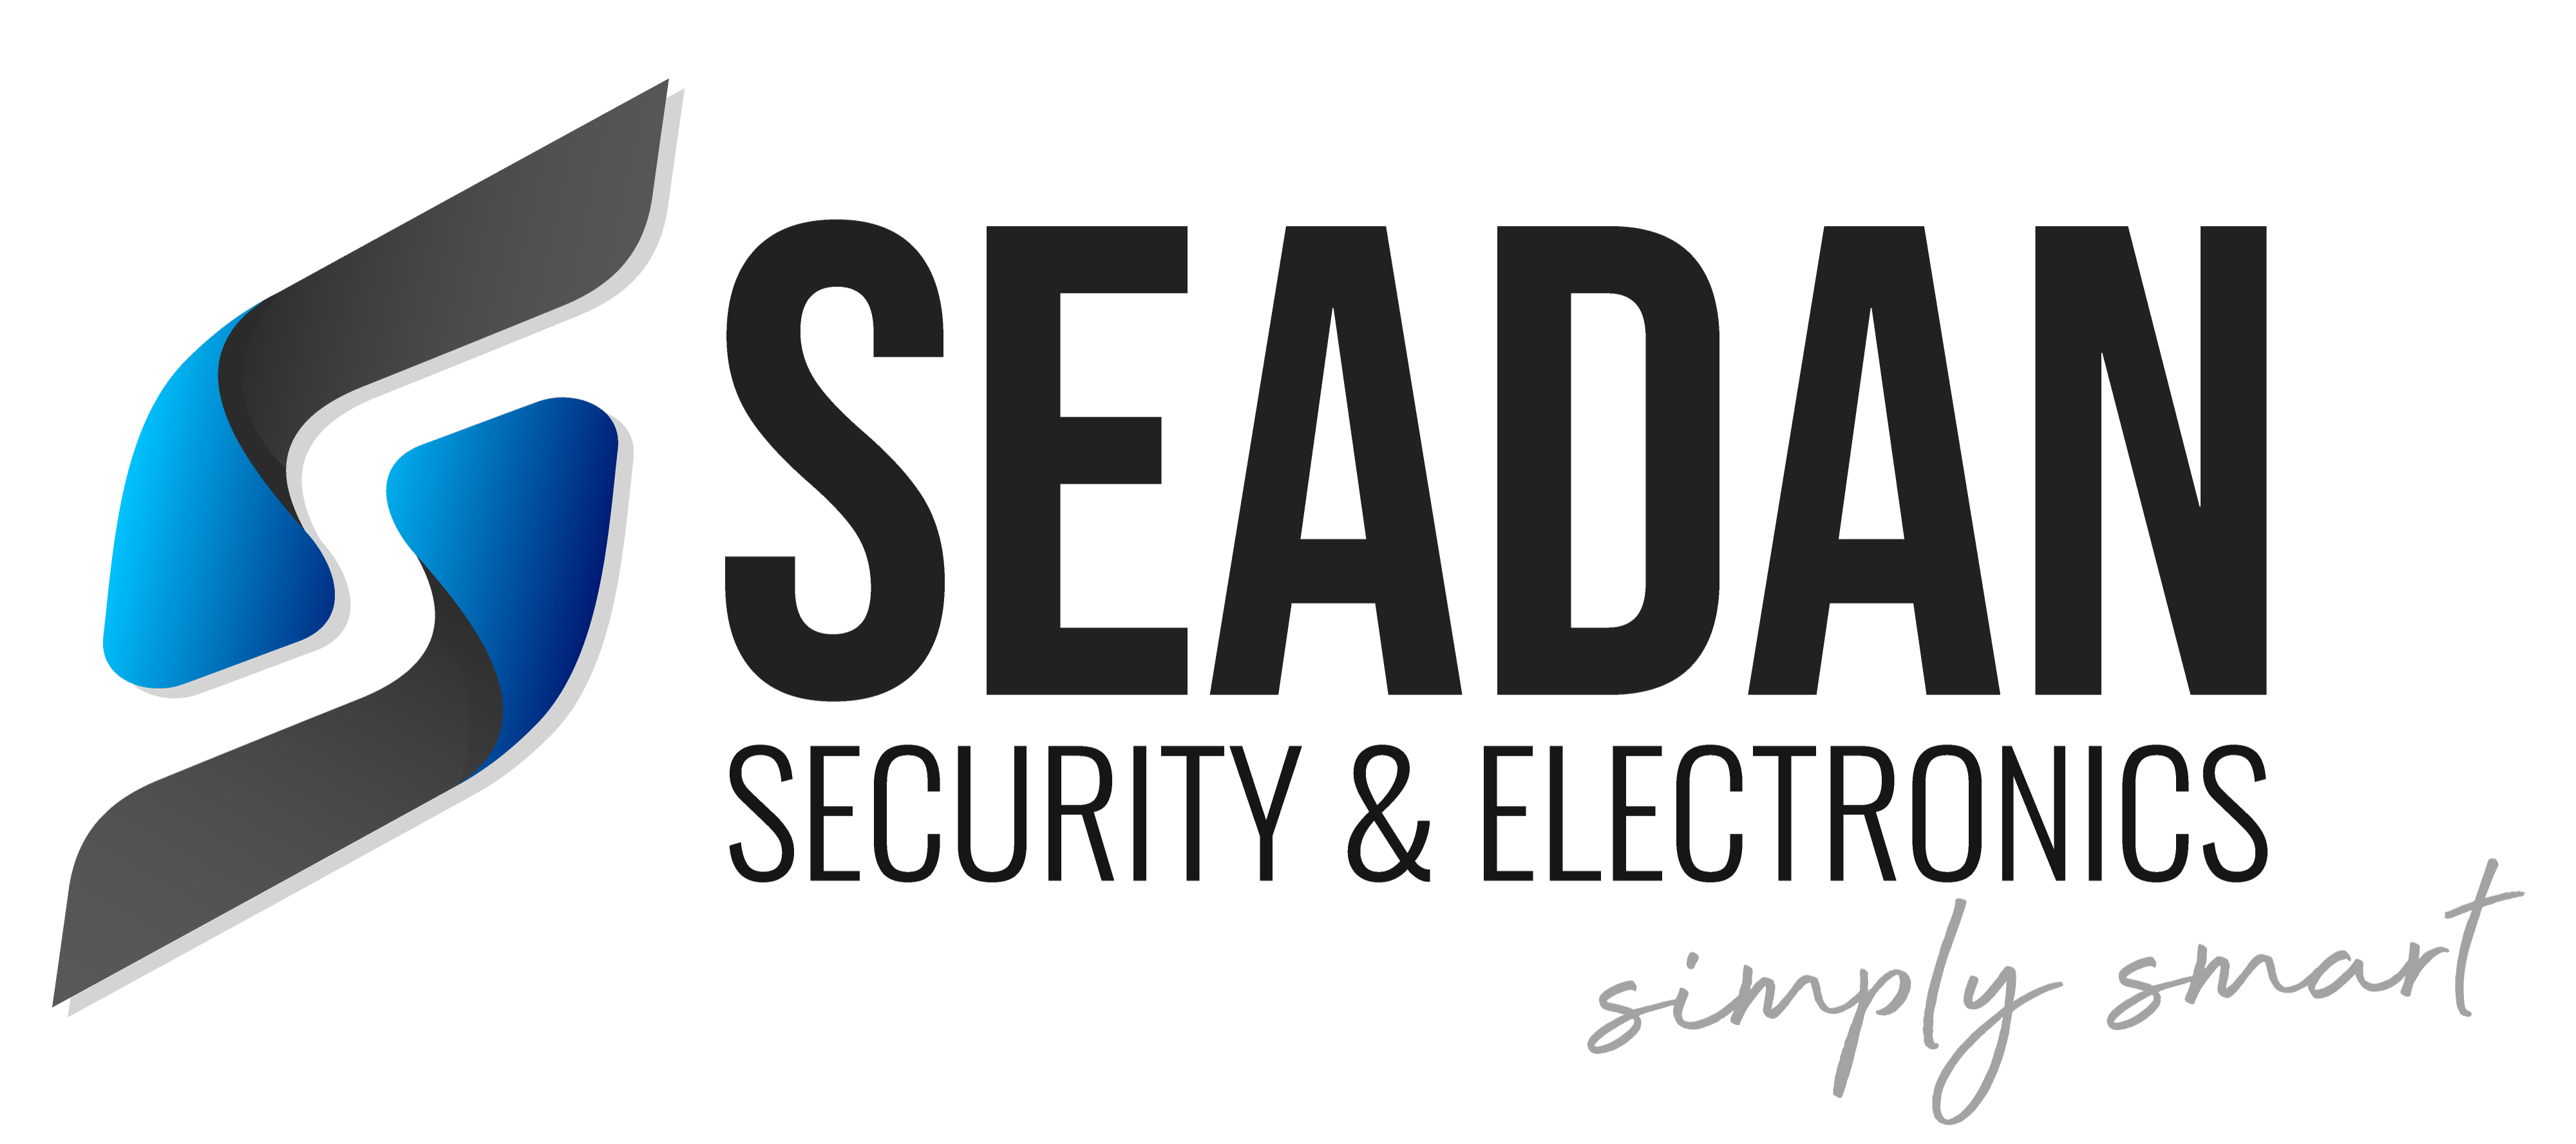 Seadan Security Logo